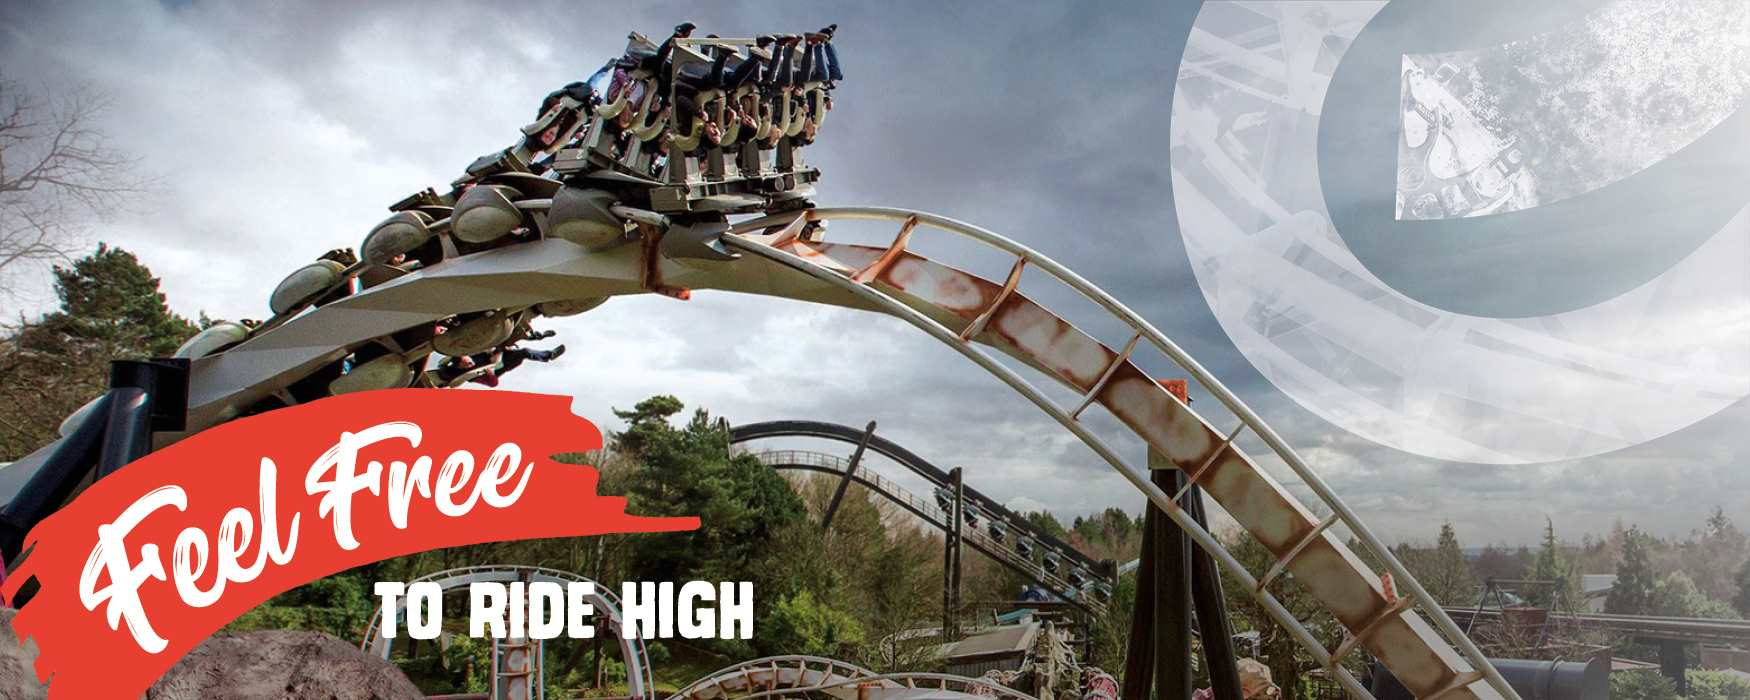 Feel Free to ride high in Staffordshire. Nemesis rollercoaster at Alton Towers theme park.